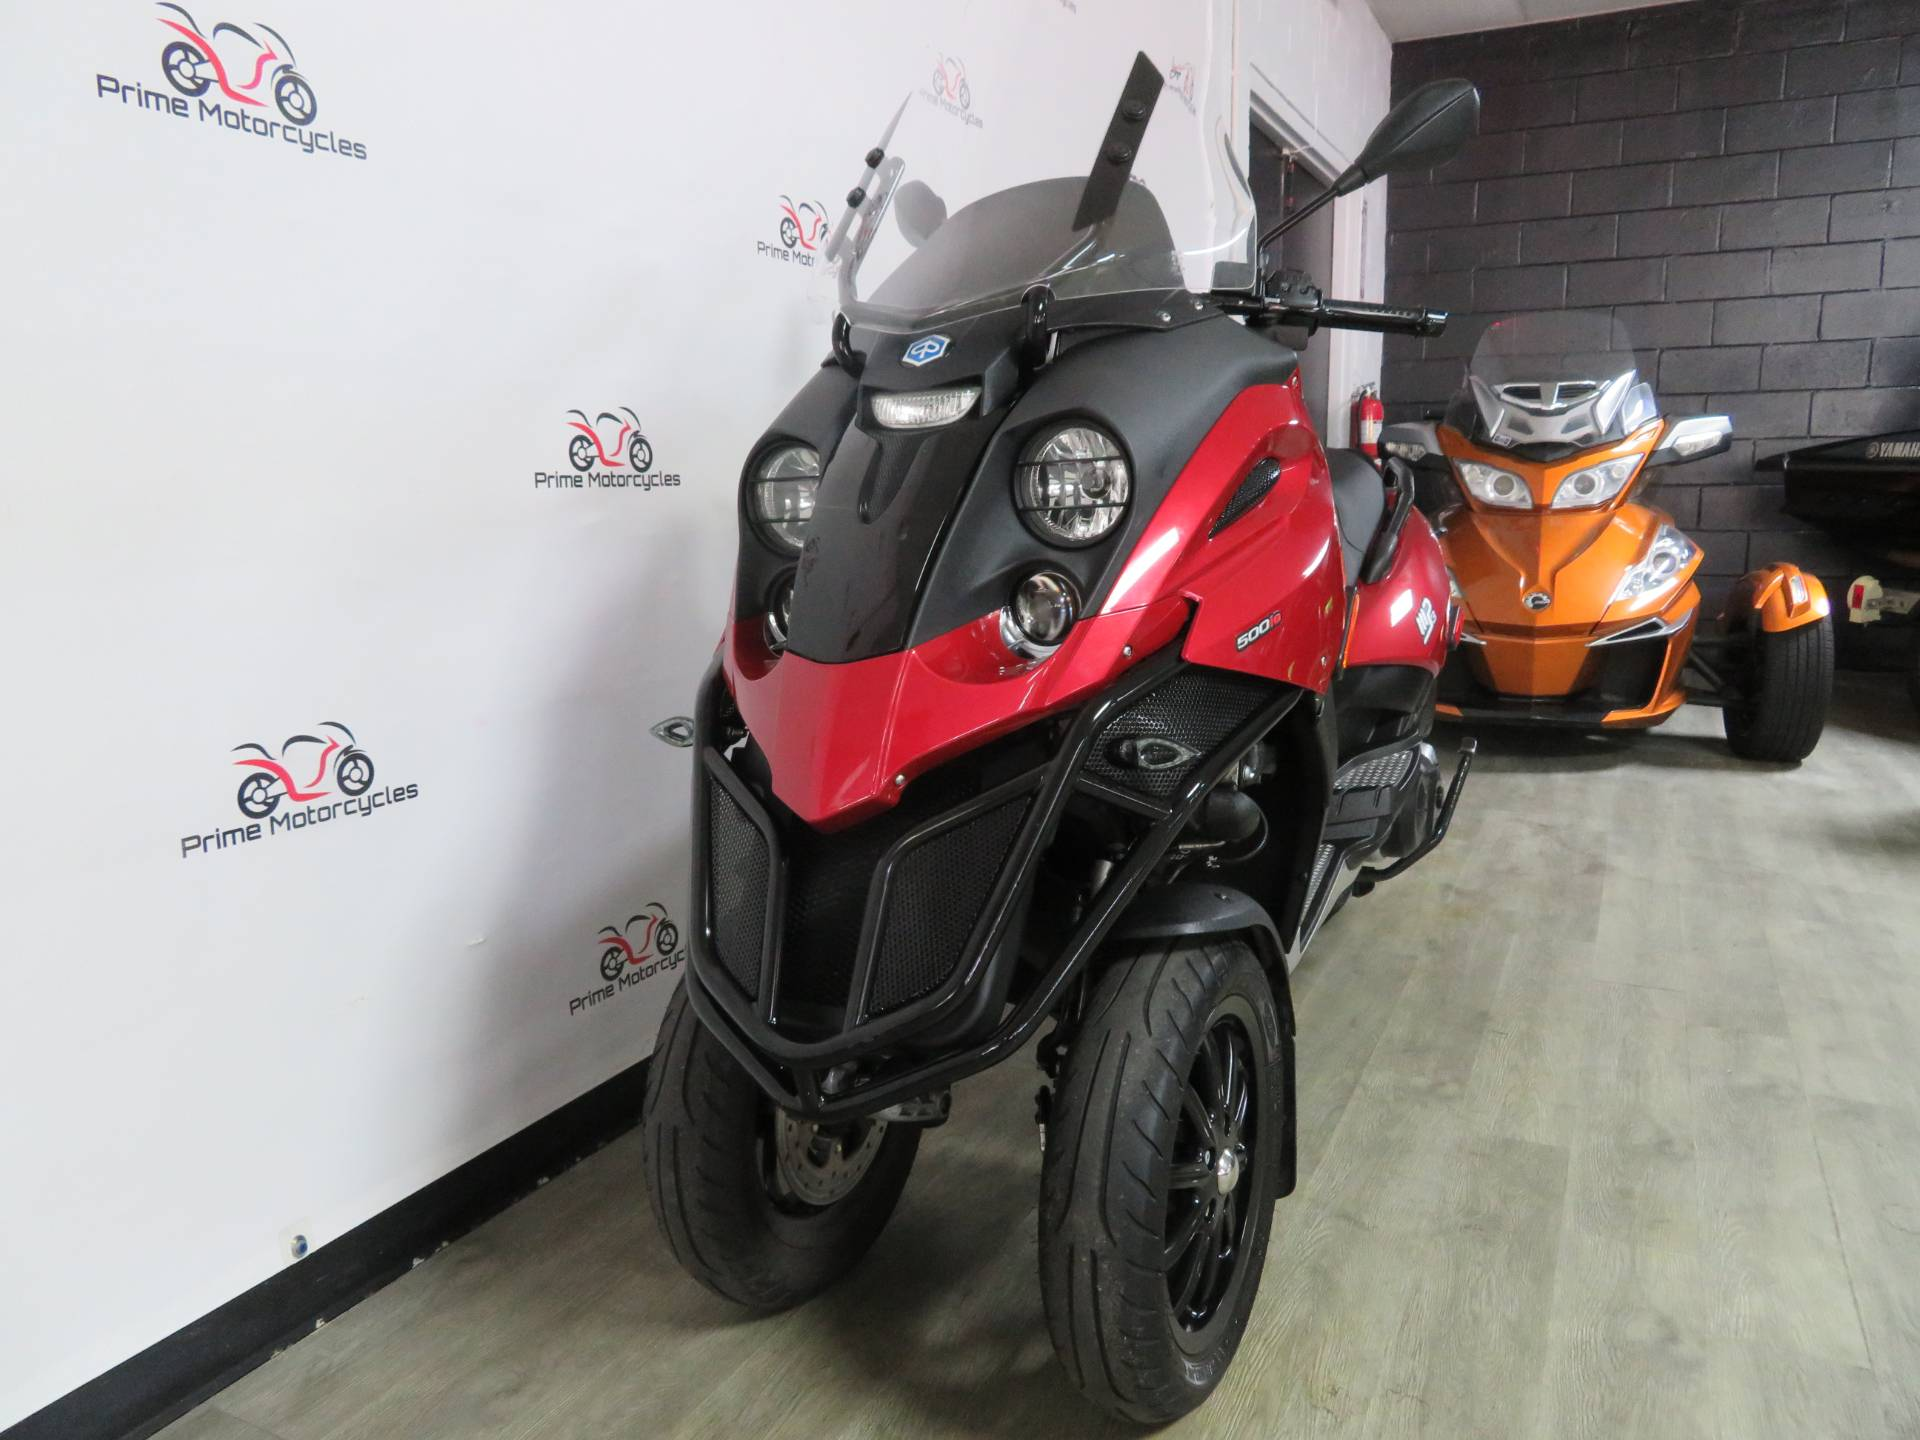 2009 Piaggio MP3 500 in Sanford, Florida - Photo 3